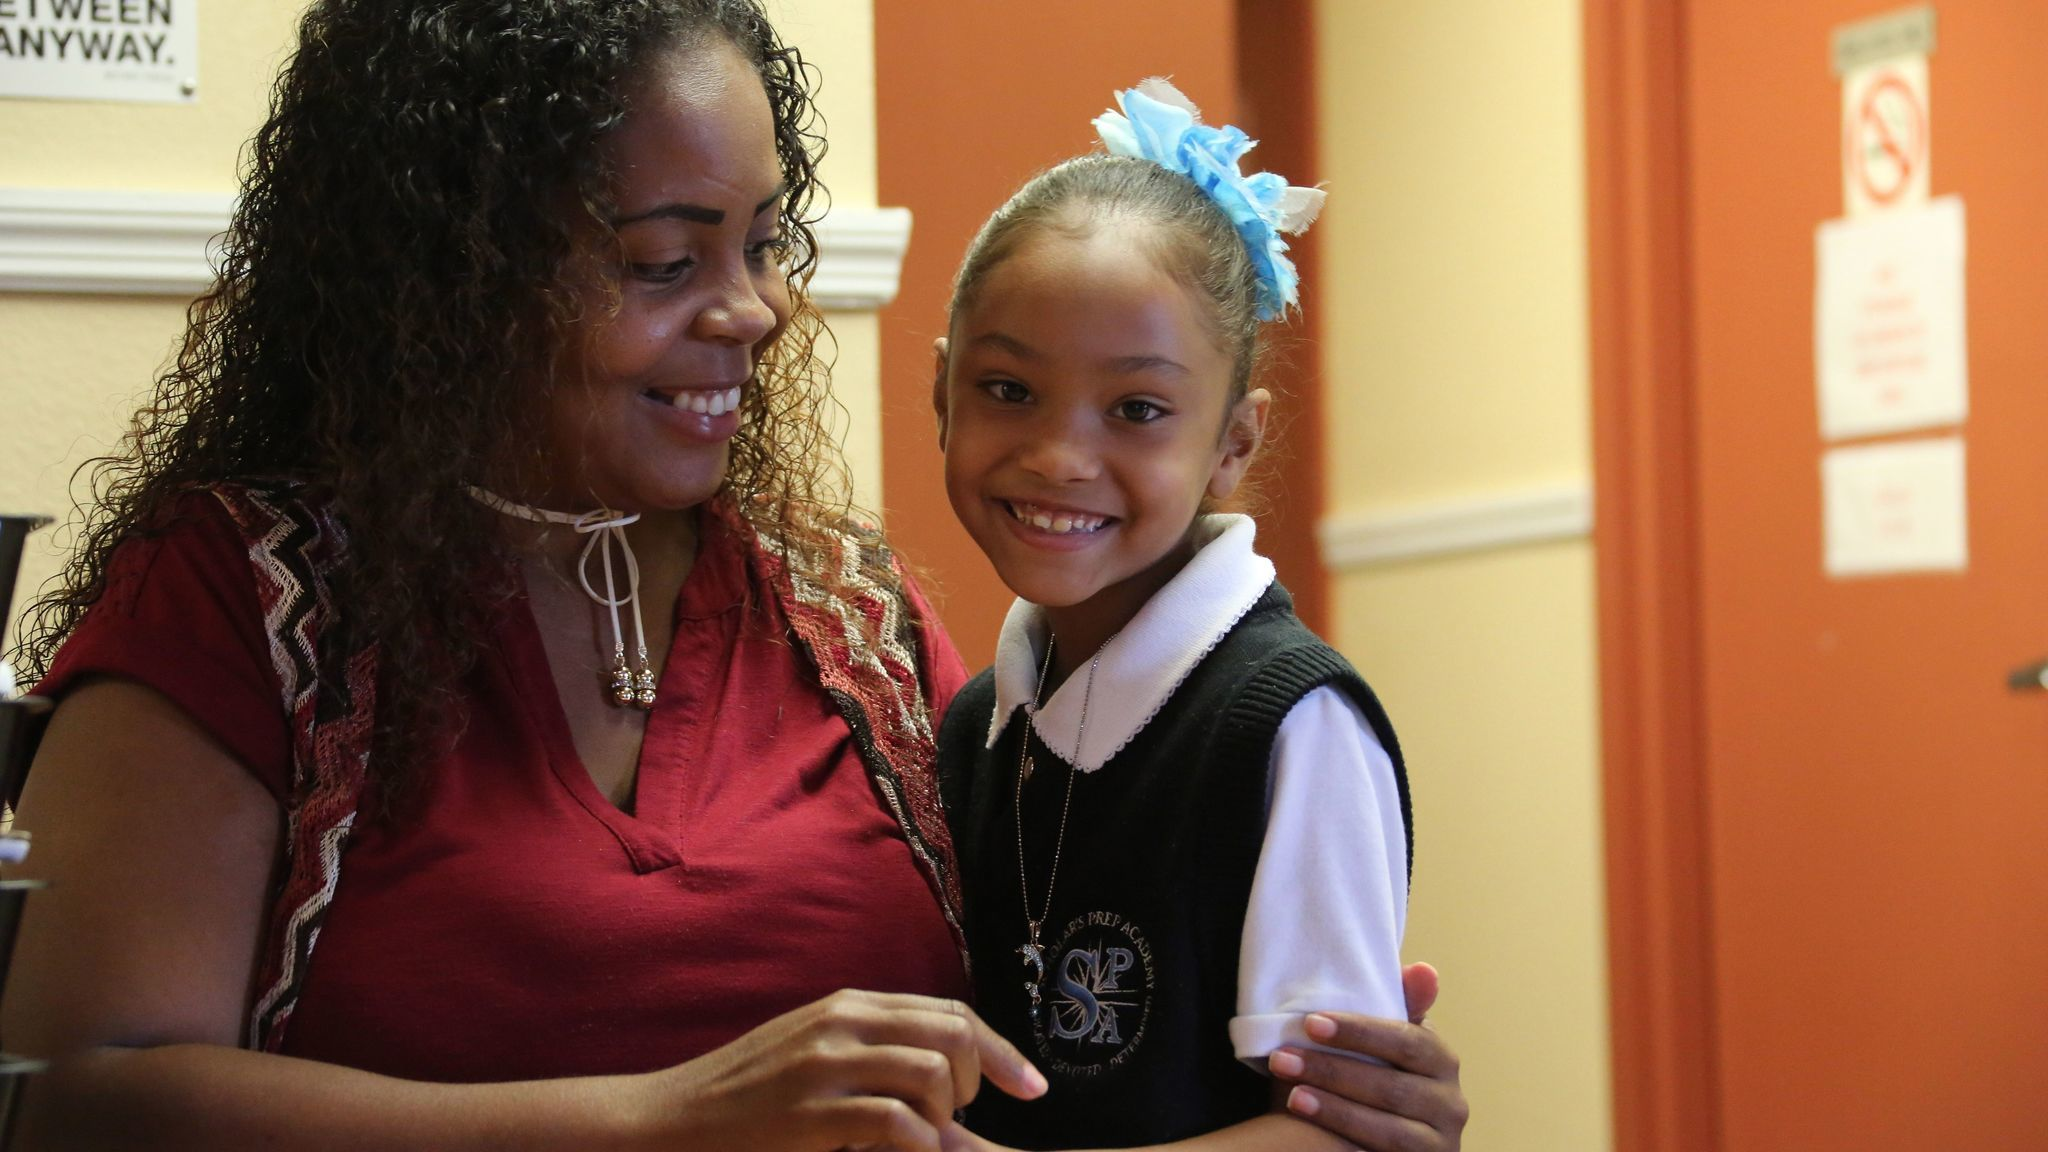 Arcelis Rodriguez picked Scholar's Prep for her six-year-old daughter Grace last year because her older daughter was bullied in her public school.